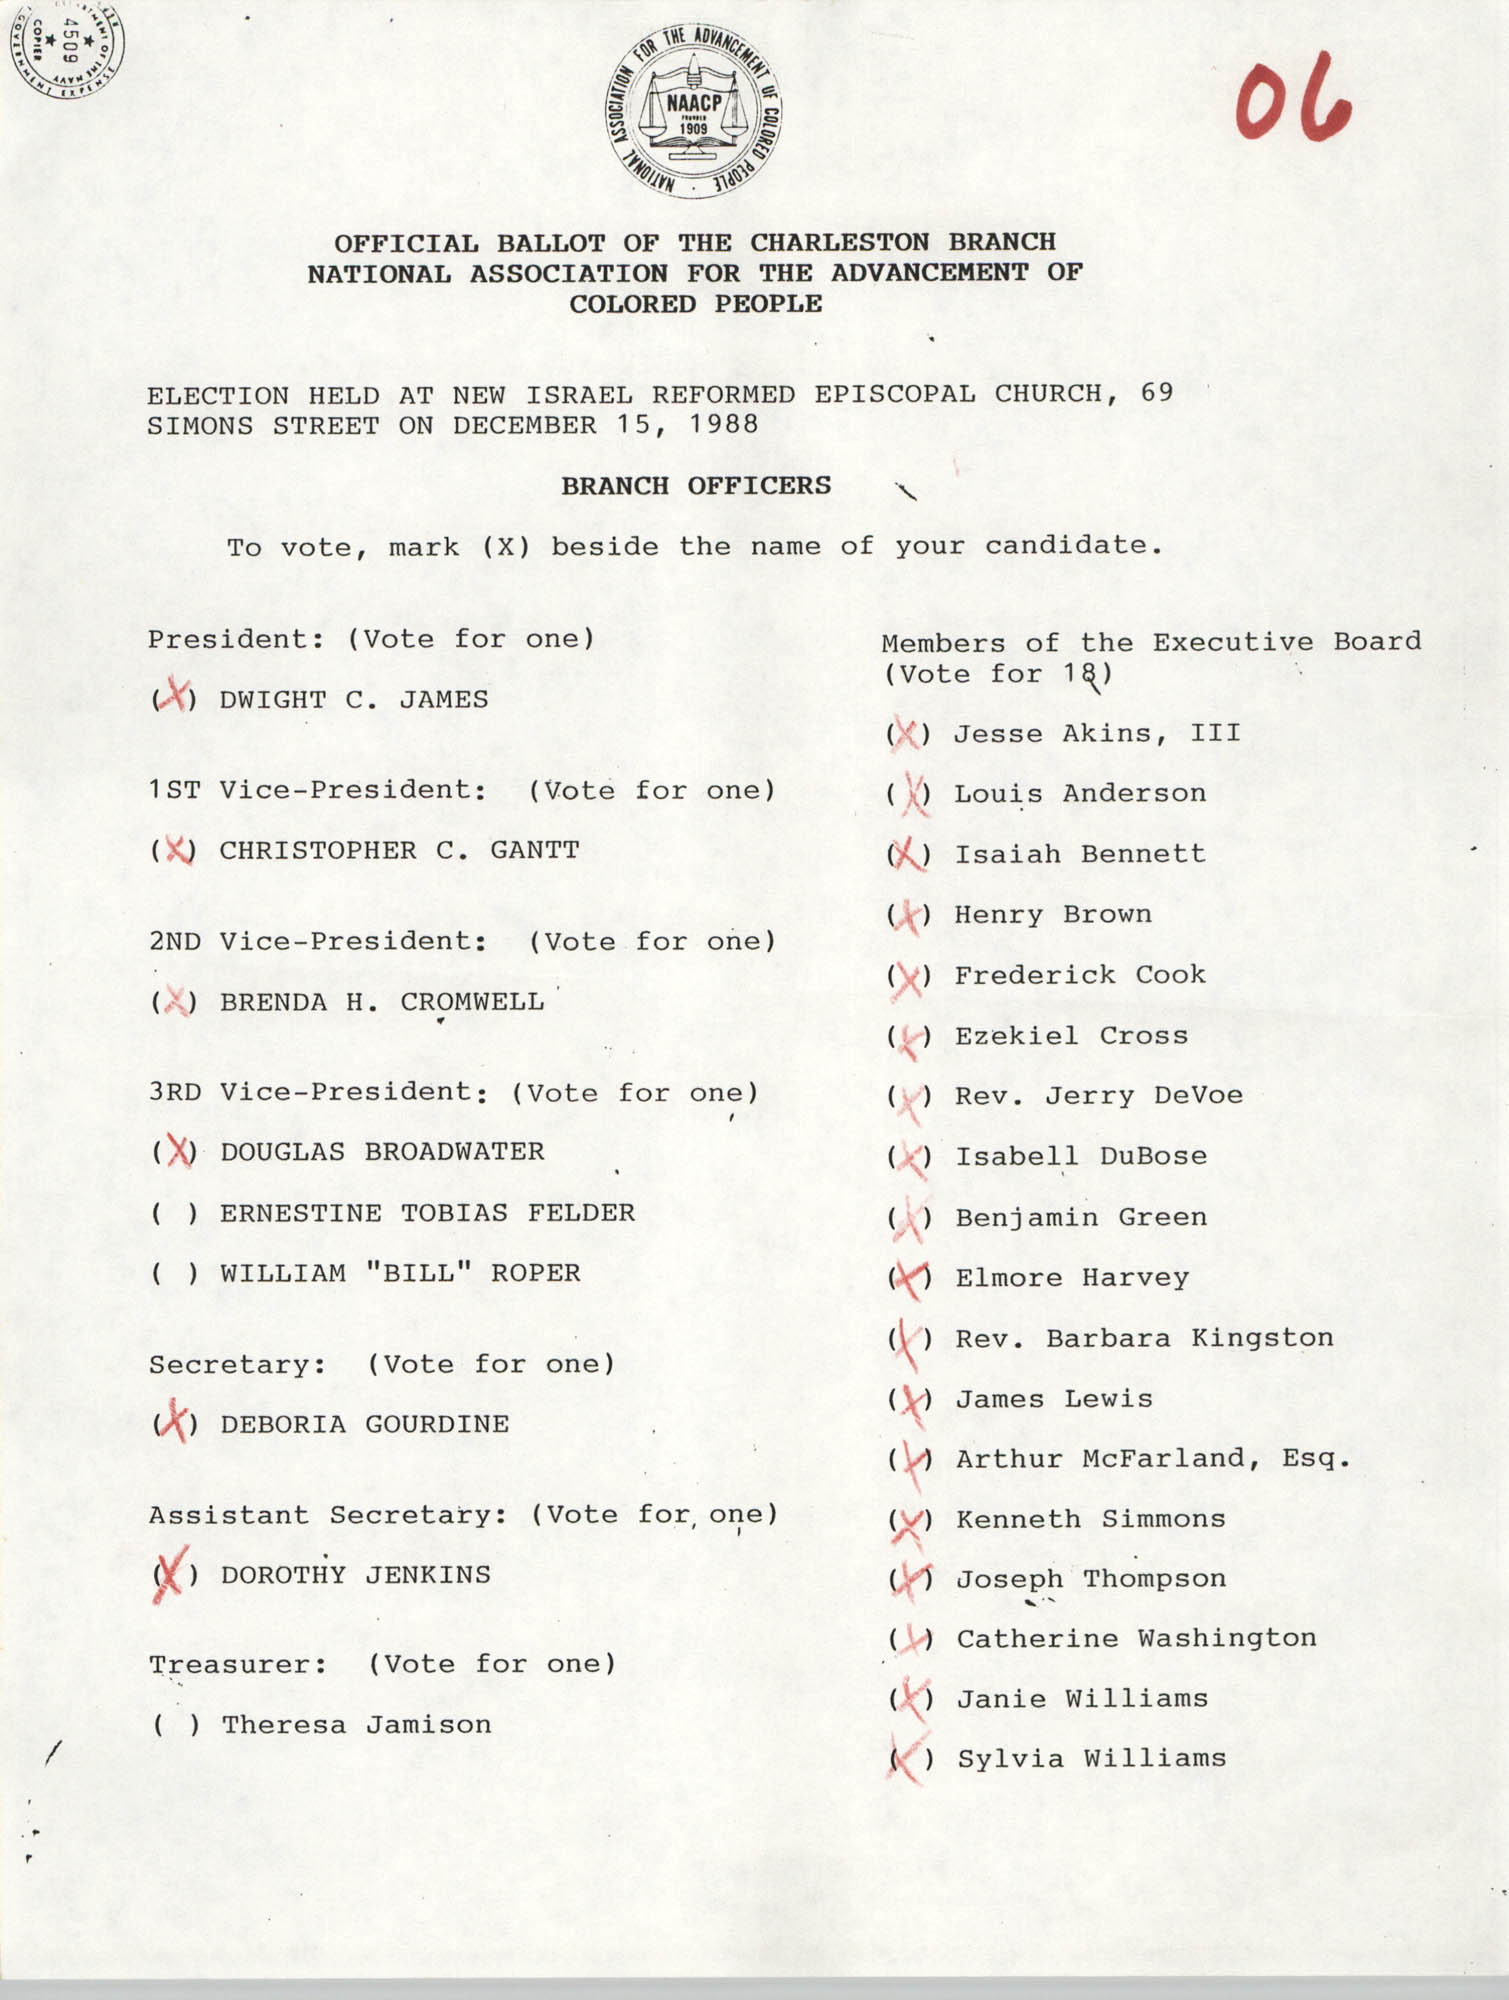 Official Ballot of the Charleston Branch of the NAACP, 06